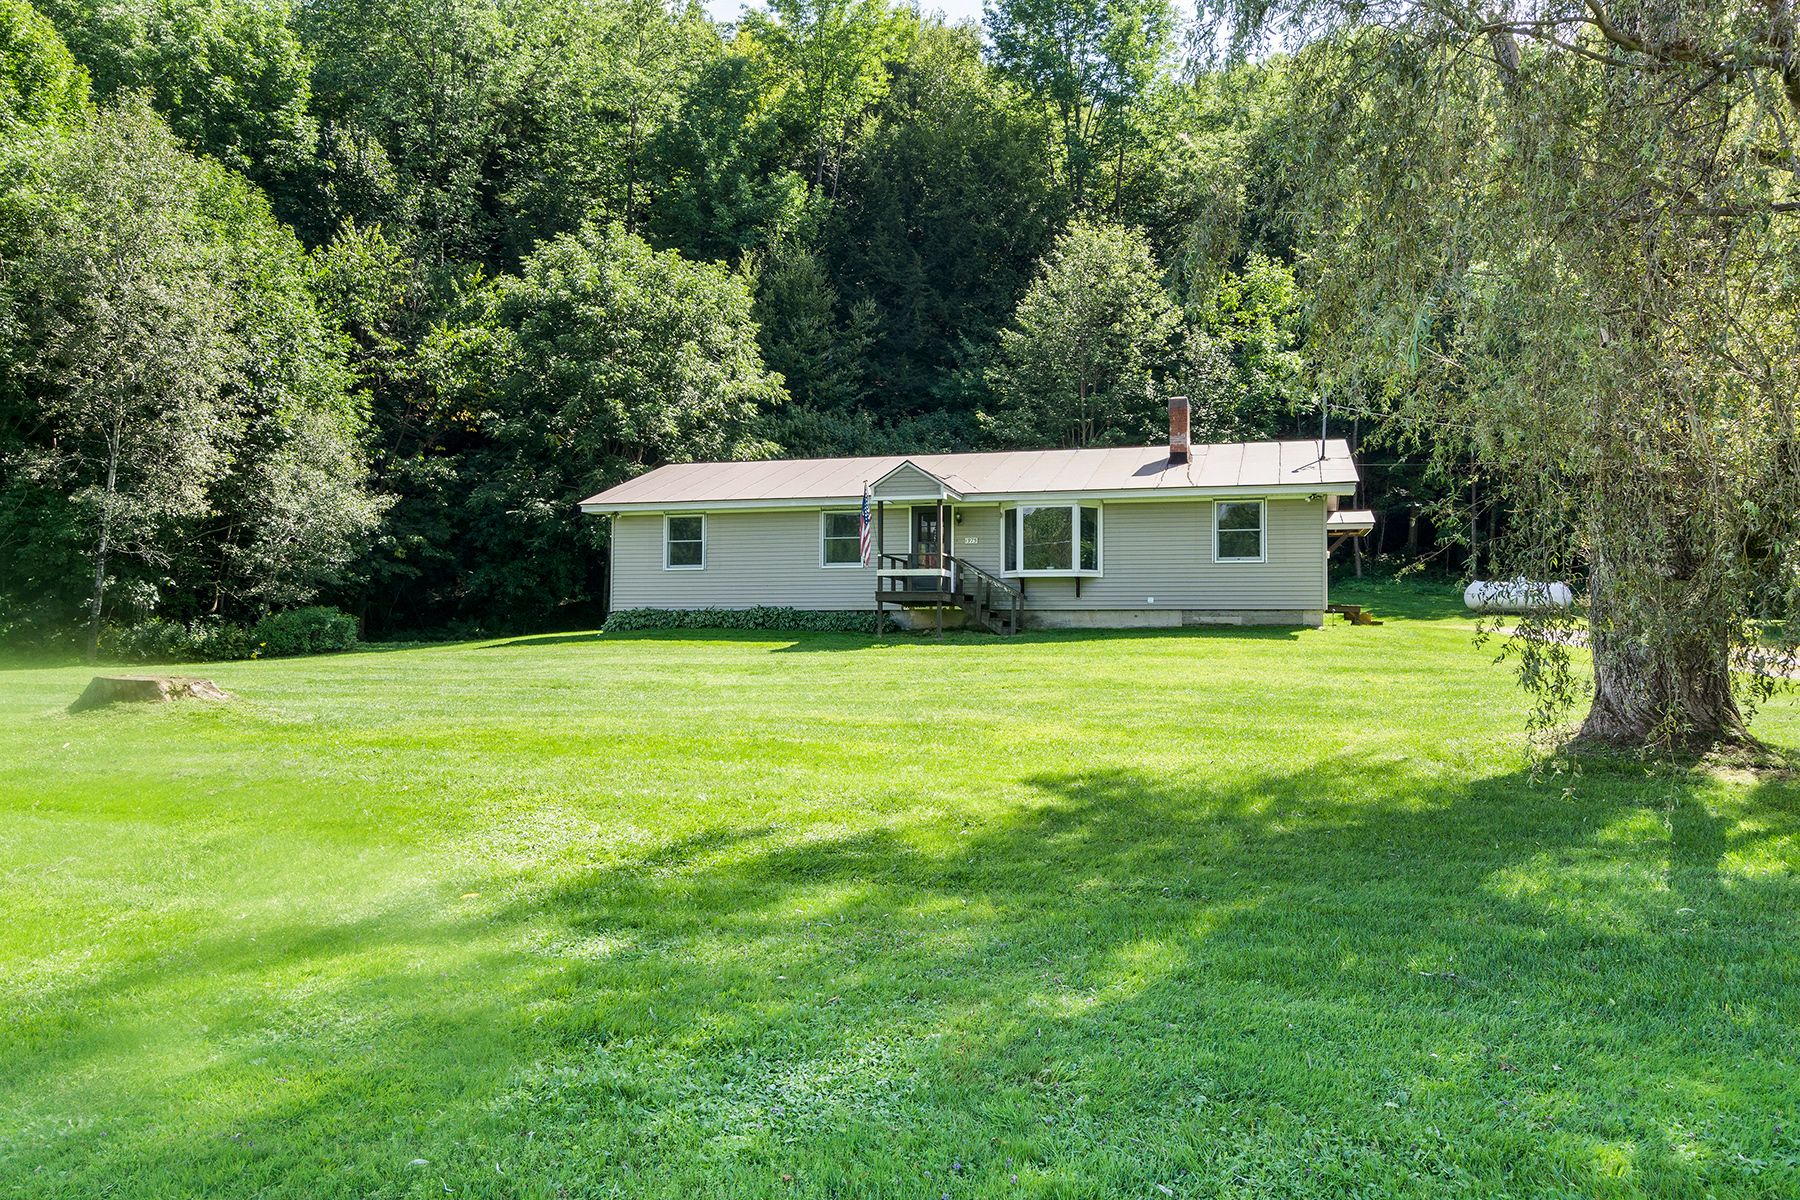 Single Family Homes for Sale at 6418 Vermont Route 107, Stockbridge 6418 Vermont Route 107 Stockbridge, Vermont 05772 United States